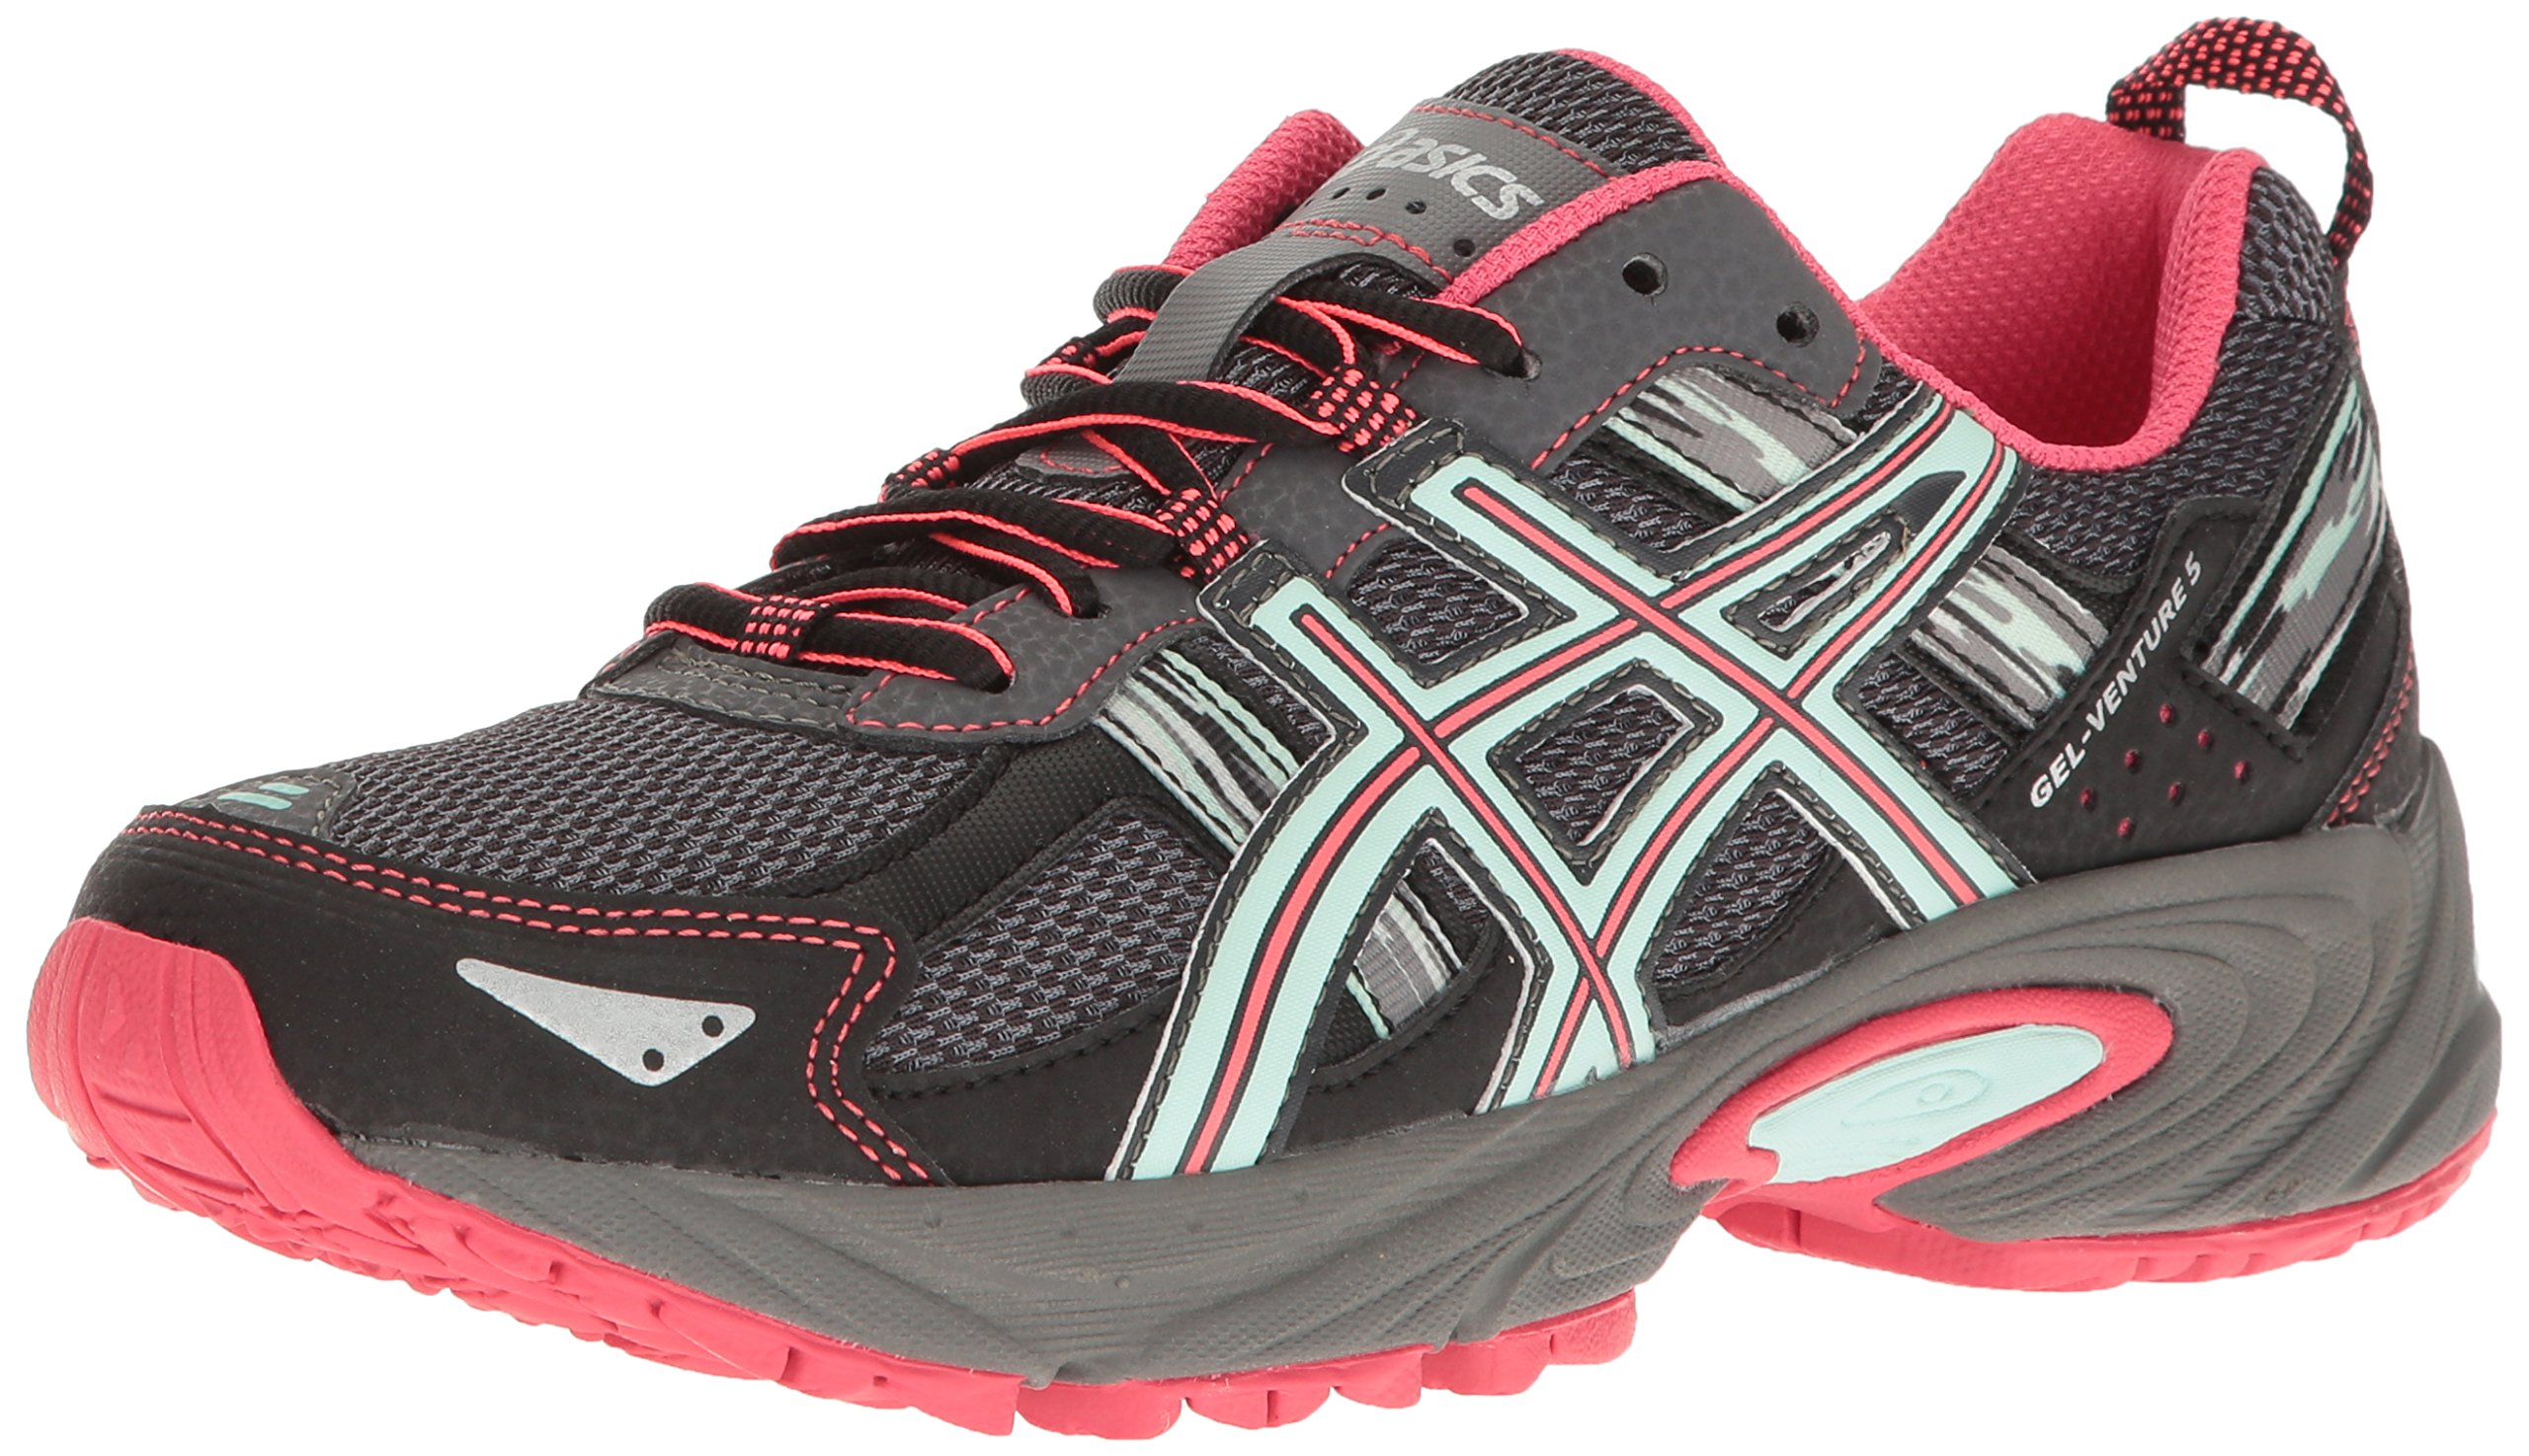 ASICS Women's Gel-Venture 5 Trail Runner, Carbon/Diva Pink/Bay, 8 M US by ASICS